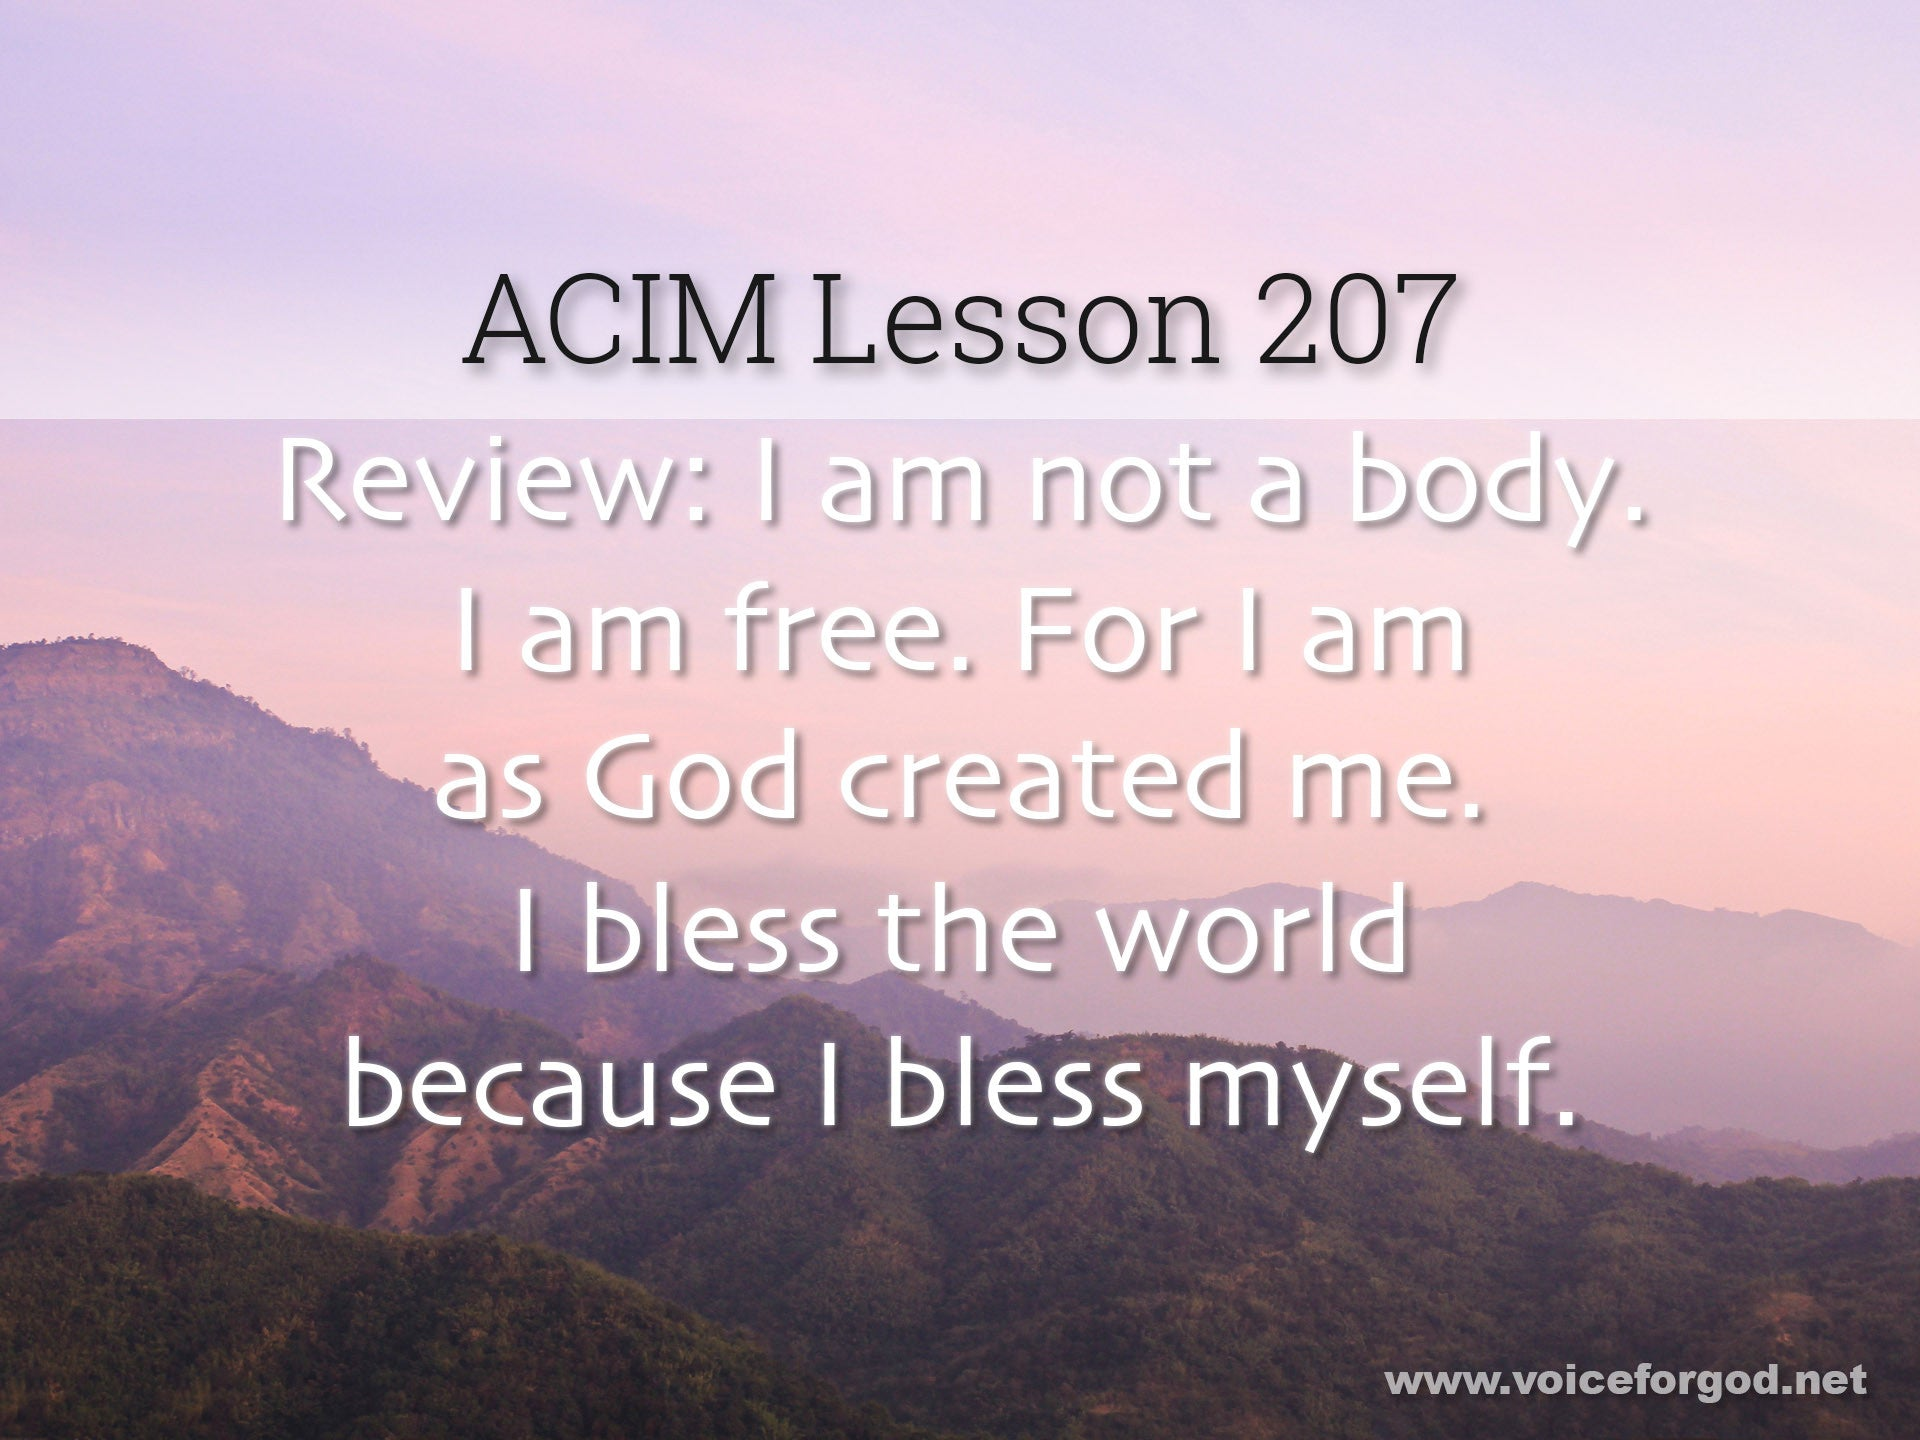 ACIM Lesson 207 - A Course in Miracles Workbook Lesson 207